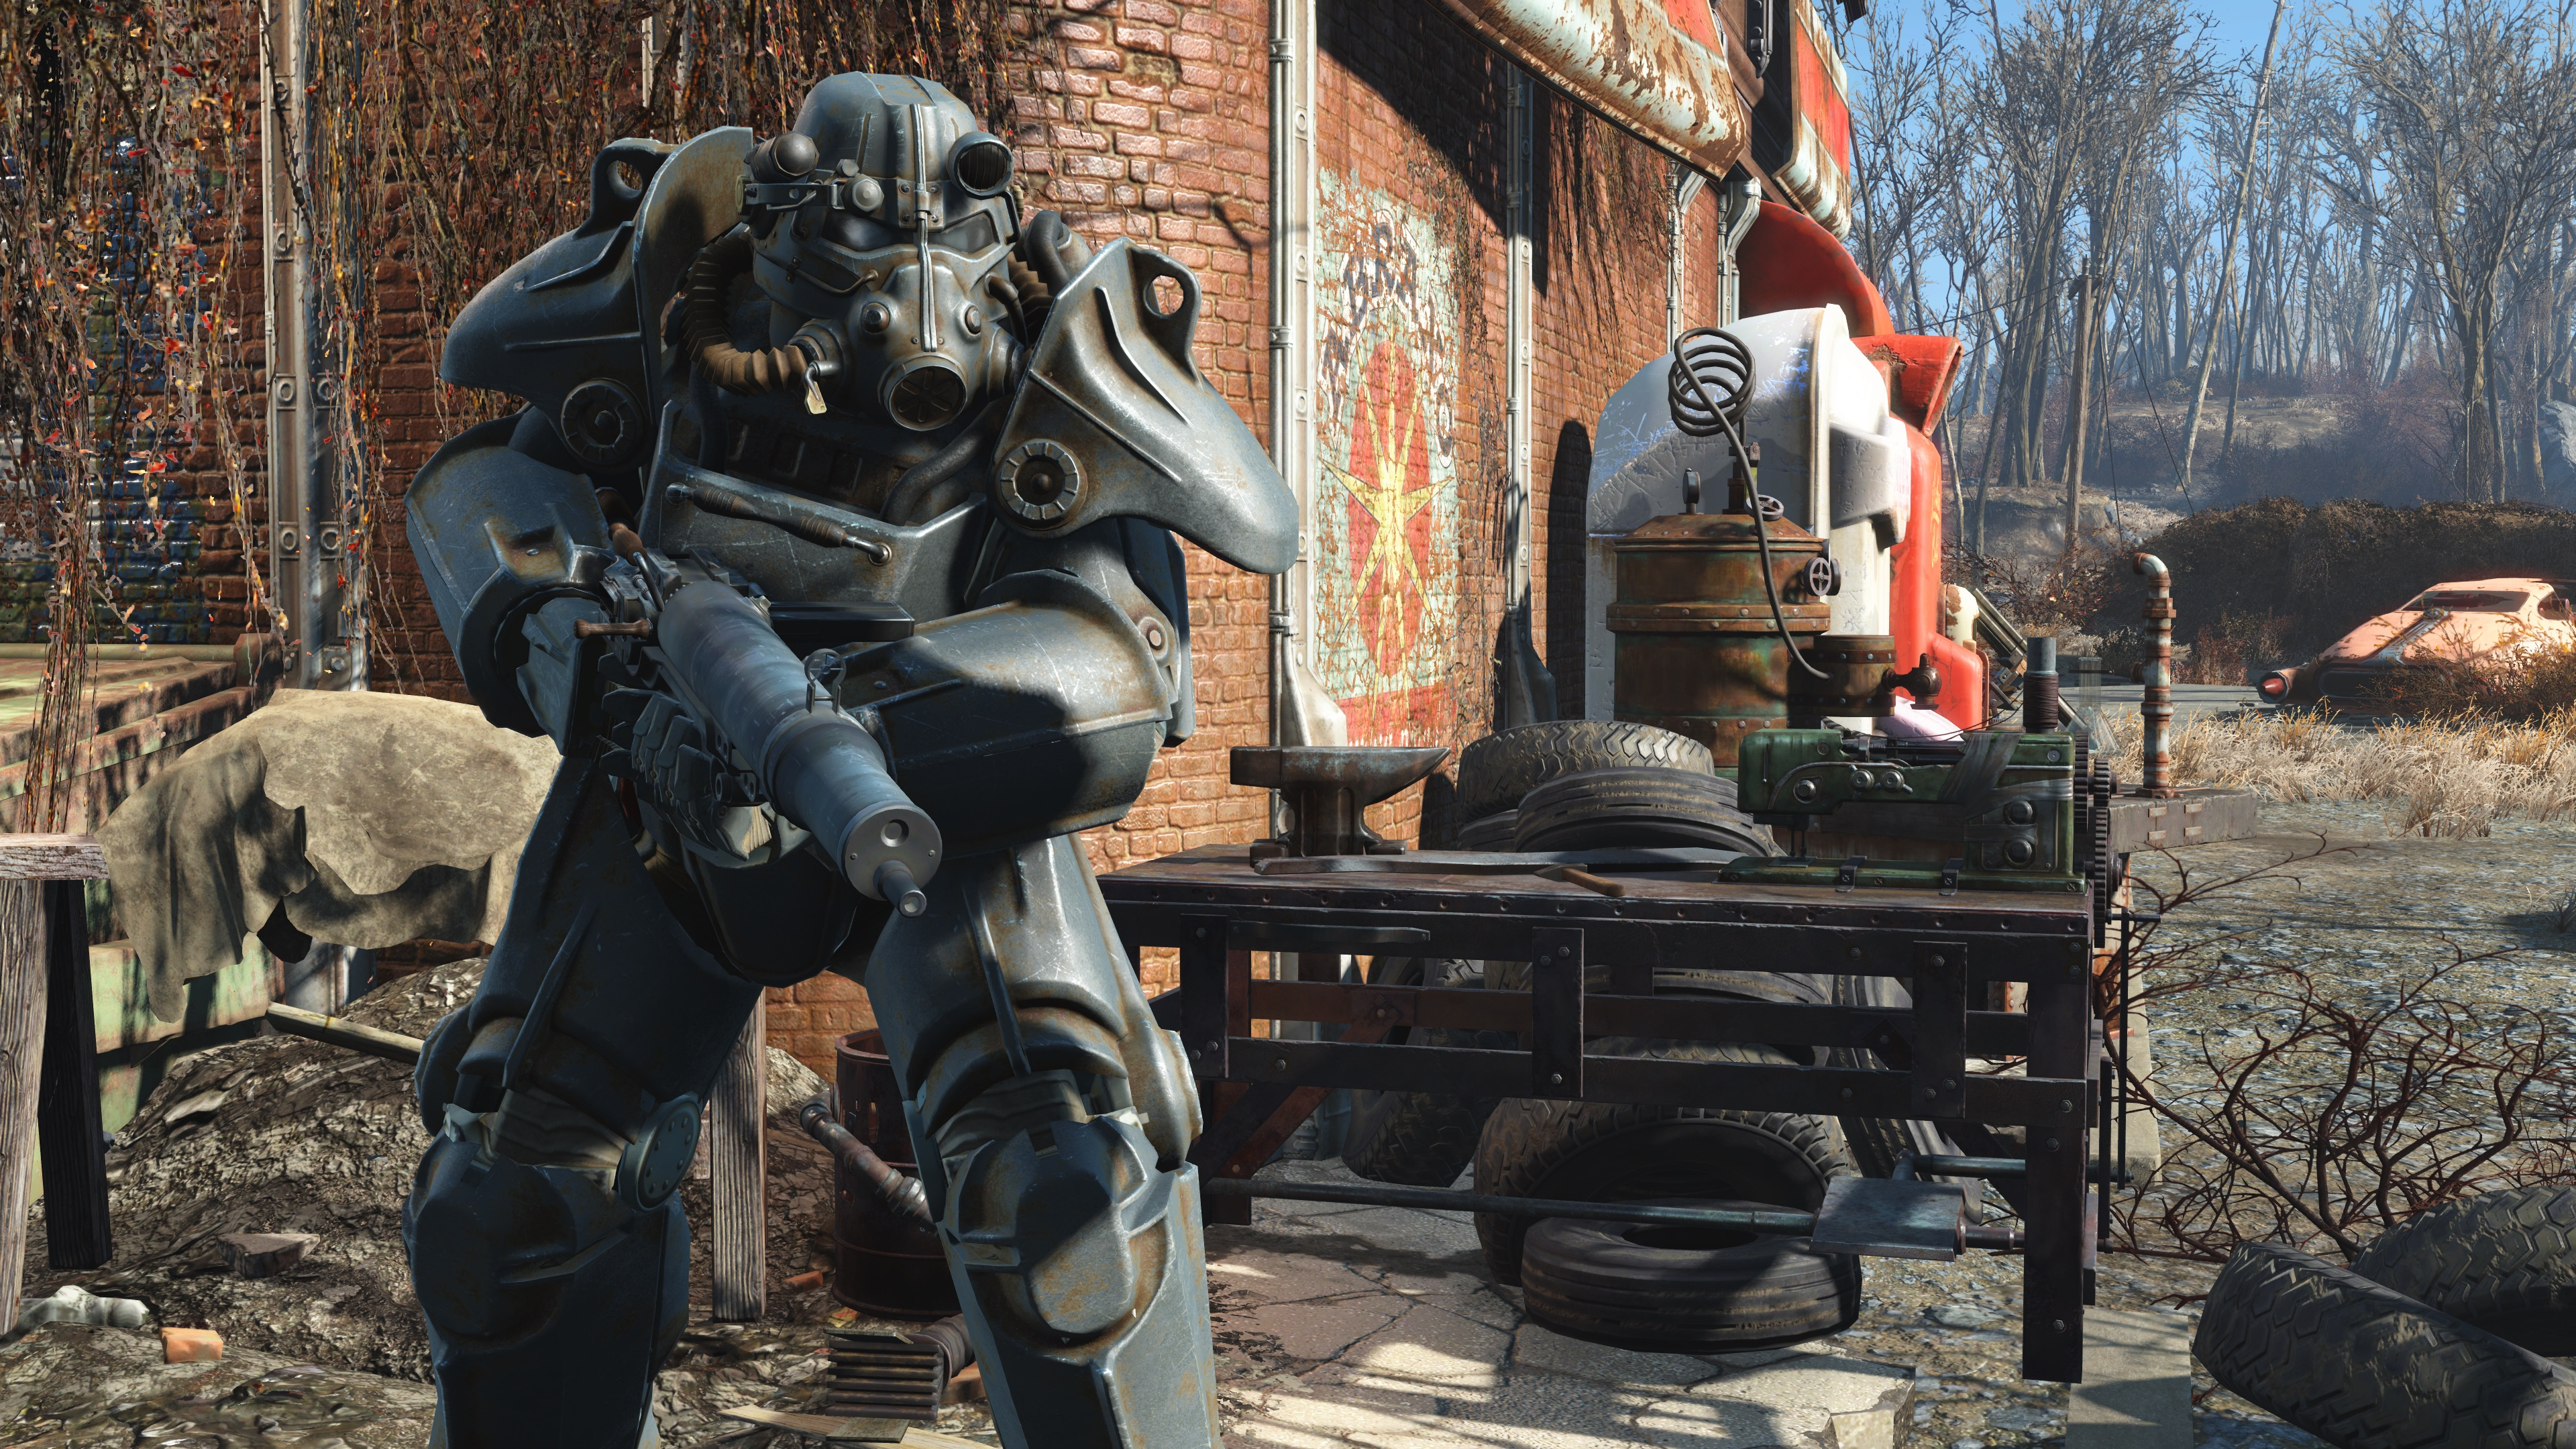 Fallout 4: PS4 Pro Patch Analysis + Boost Mode Frame-Rate Tests